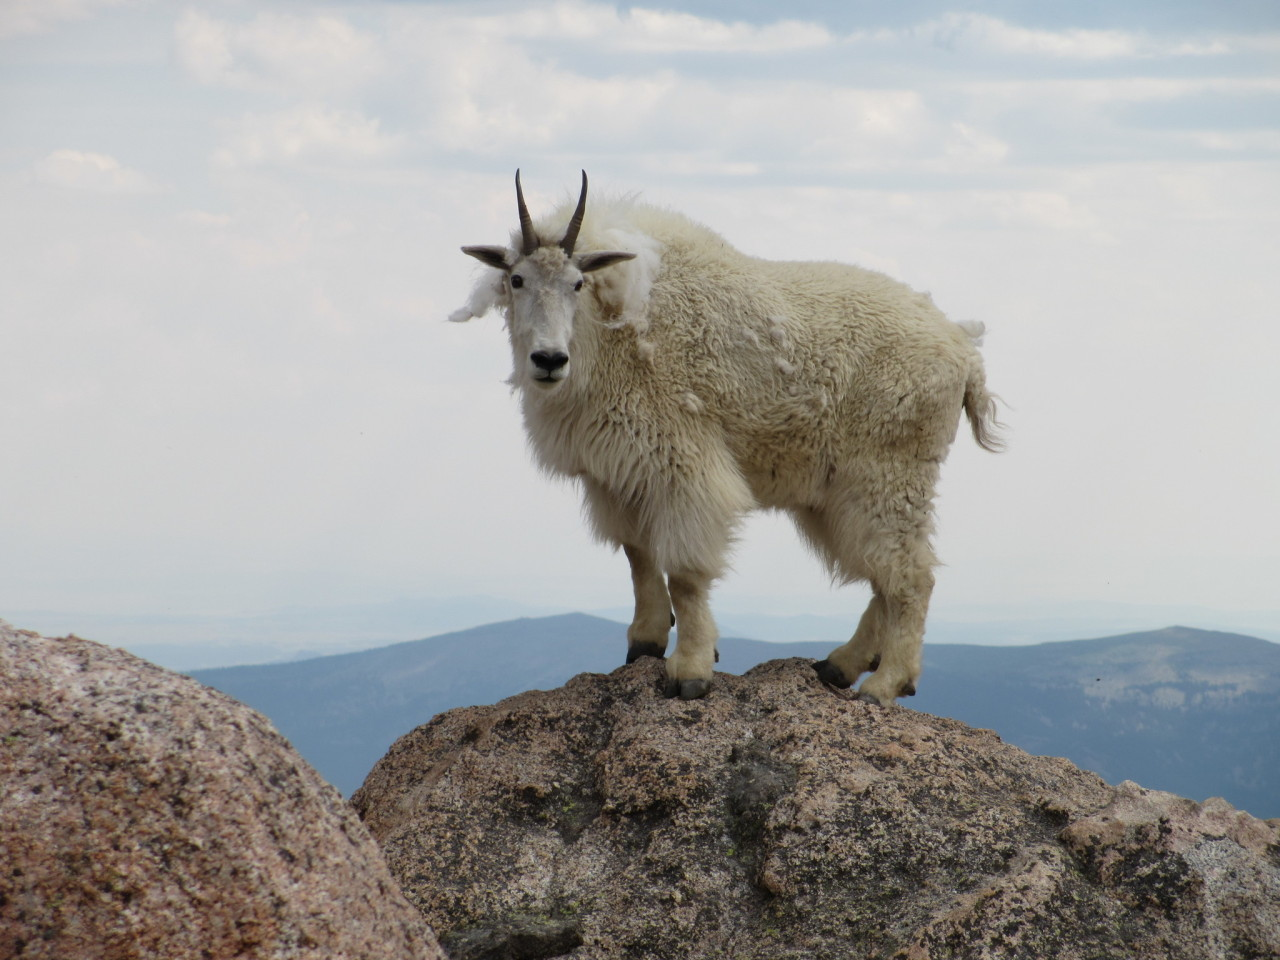 mountain goat molts inat